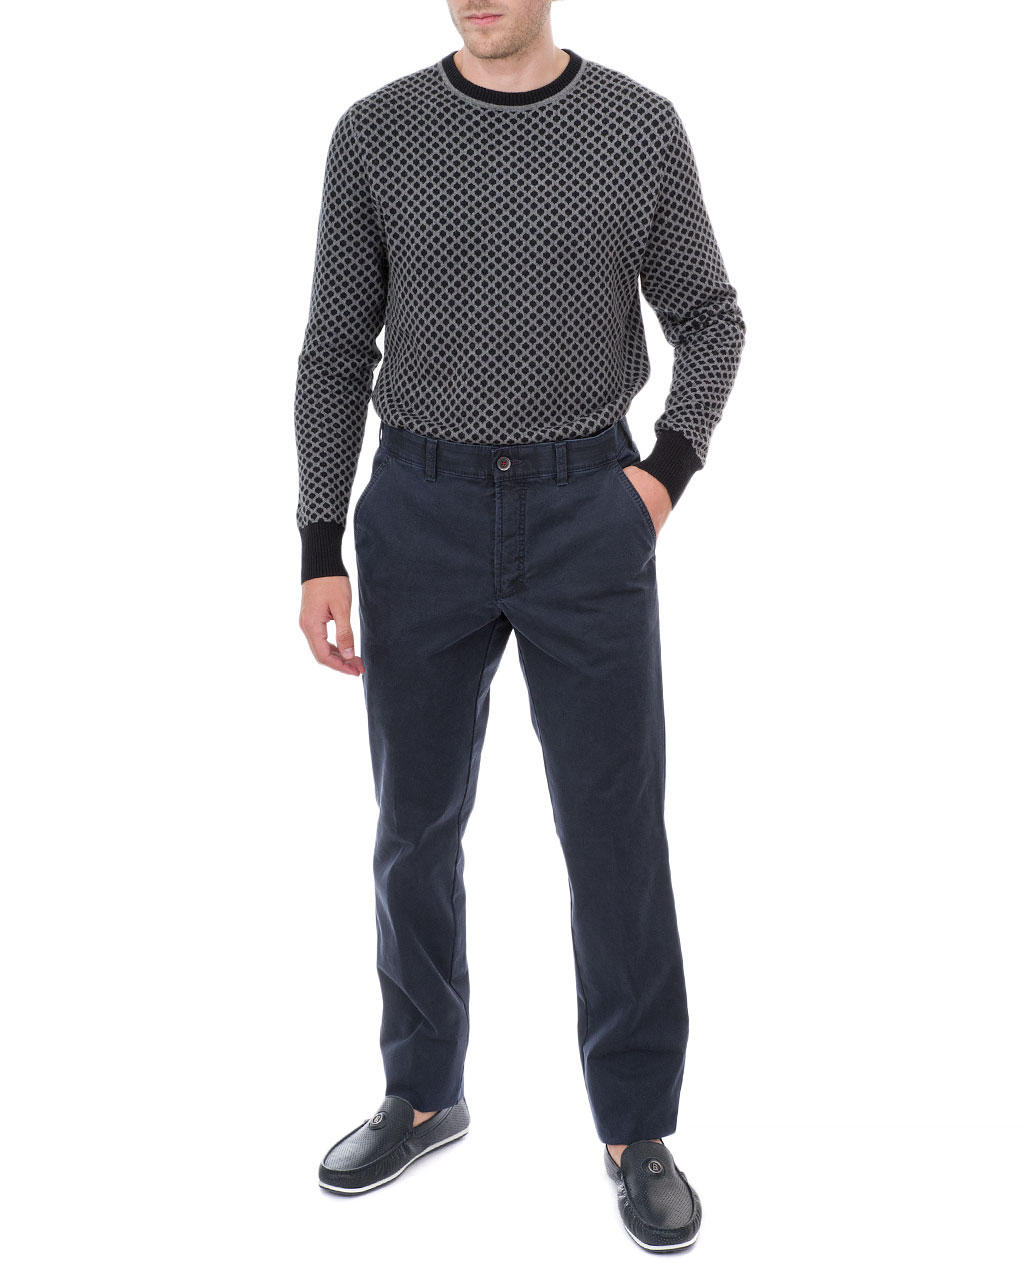 Men's trousers Garvey 6429-44/19-20 (2)